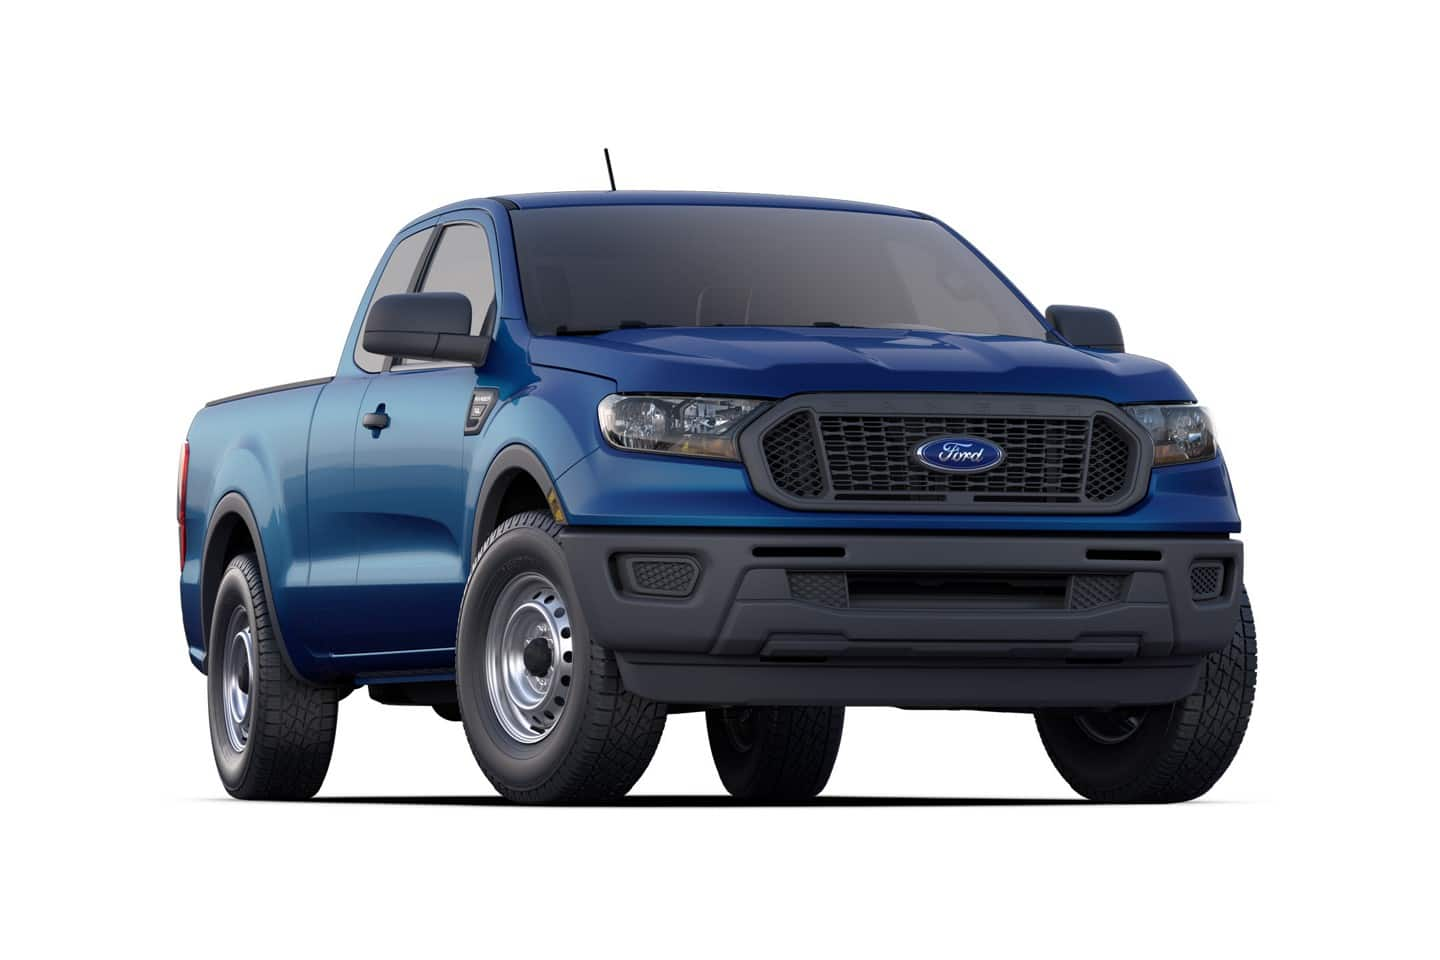 61 All New 2019 Ford Ranger Aluminum Exterior and Interior for 2019 Ford Ranger Aluminum